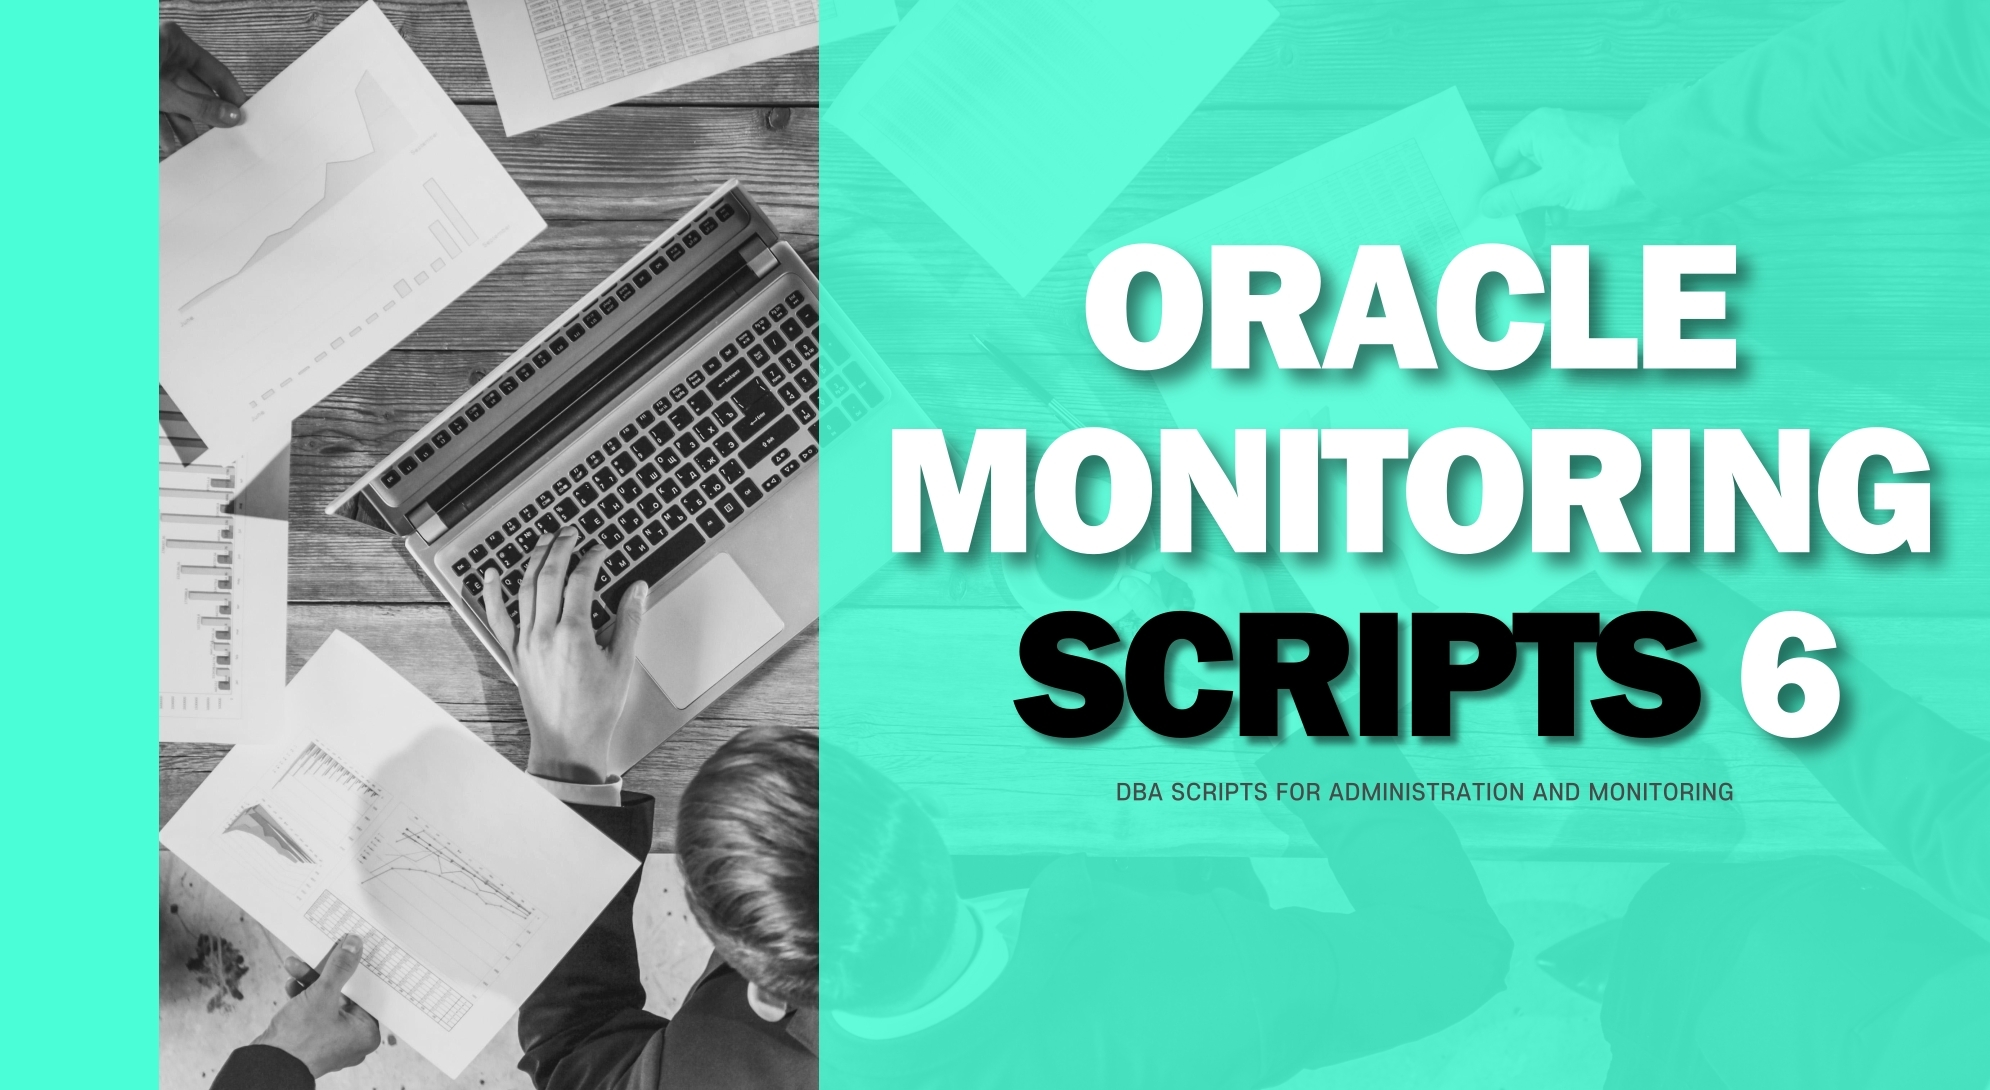 Oracle Monitoring Scripts 6